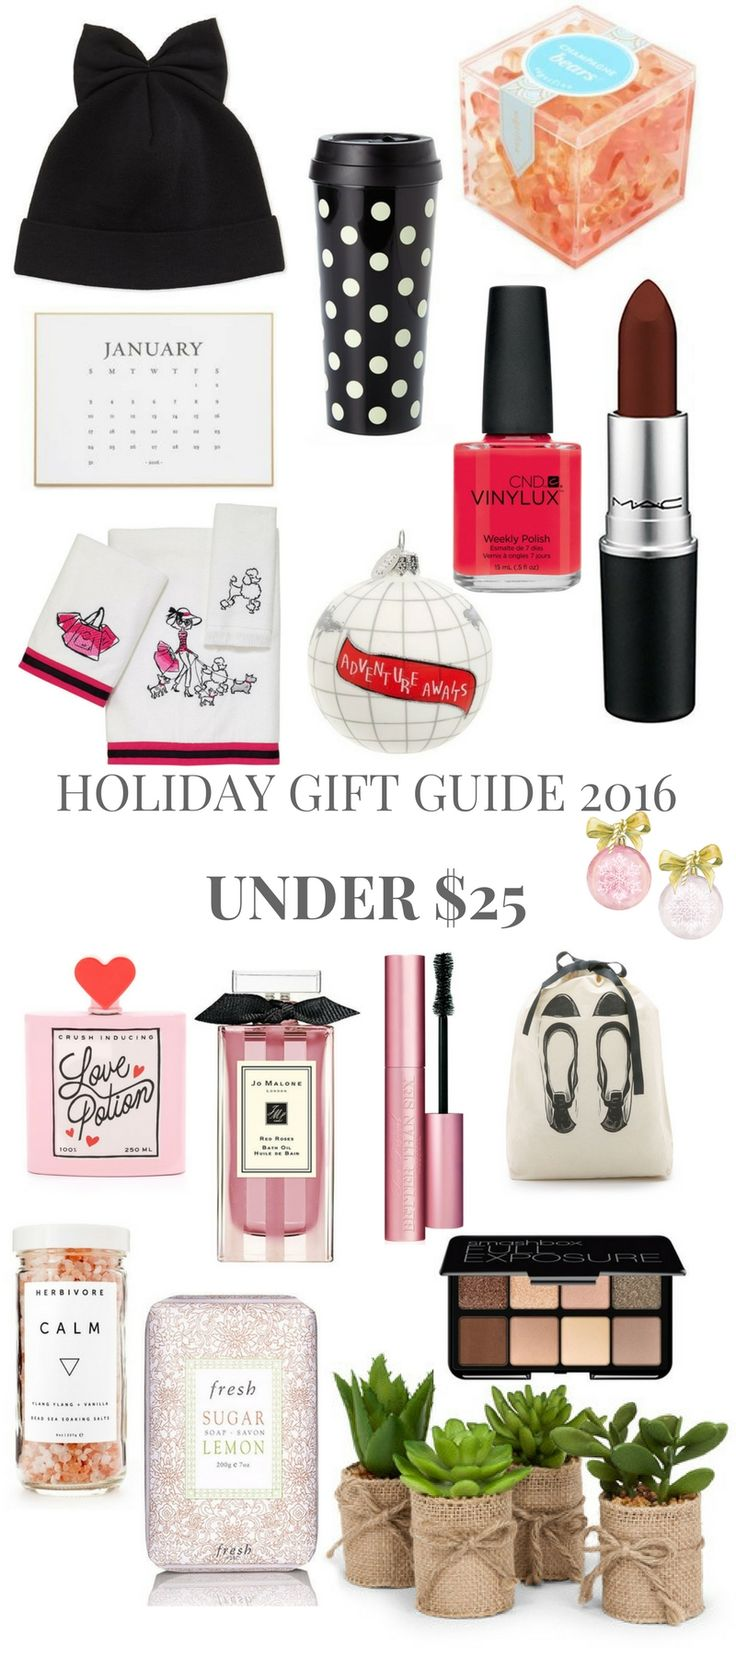 HOLIDAY GIFT GUIDE UNDER $25 // Shoegal Out In The World